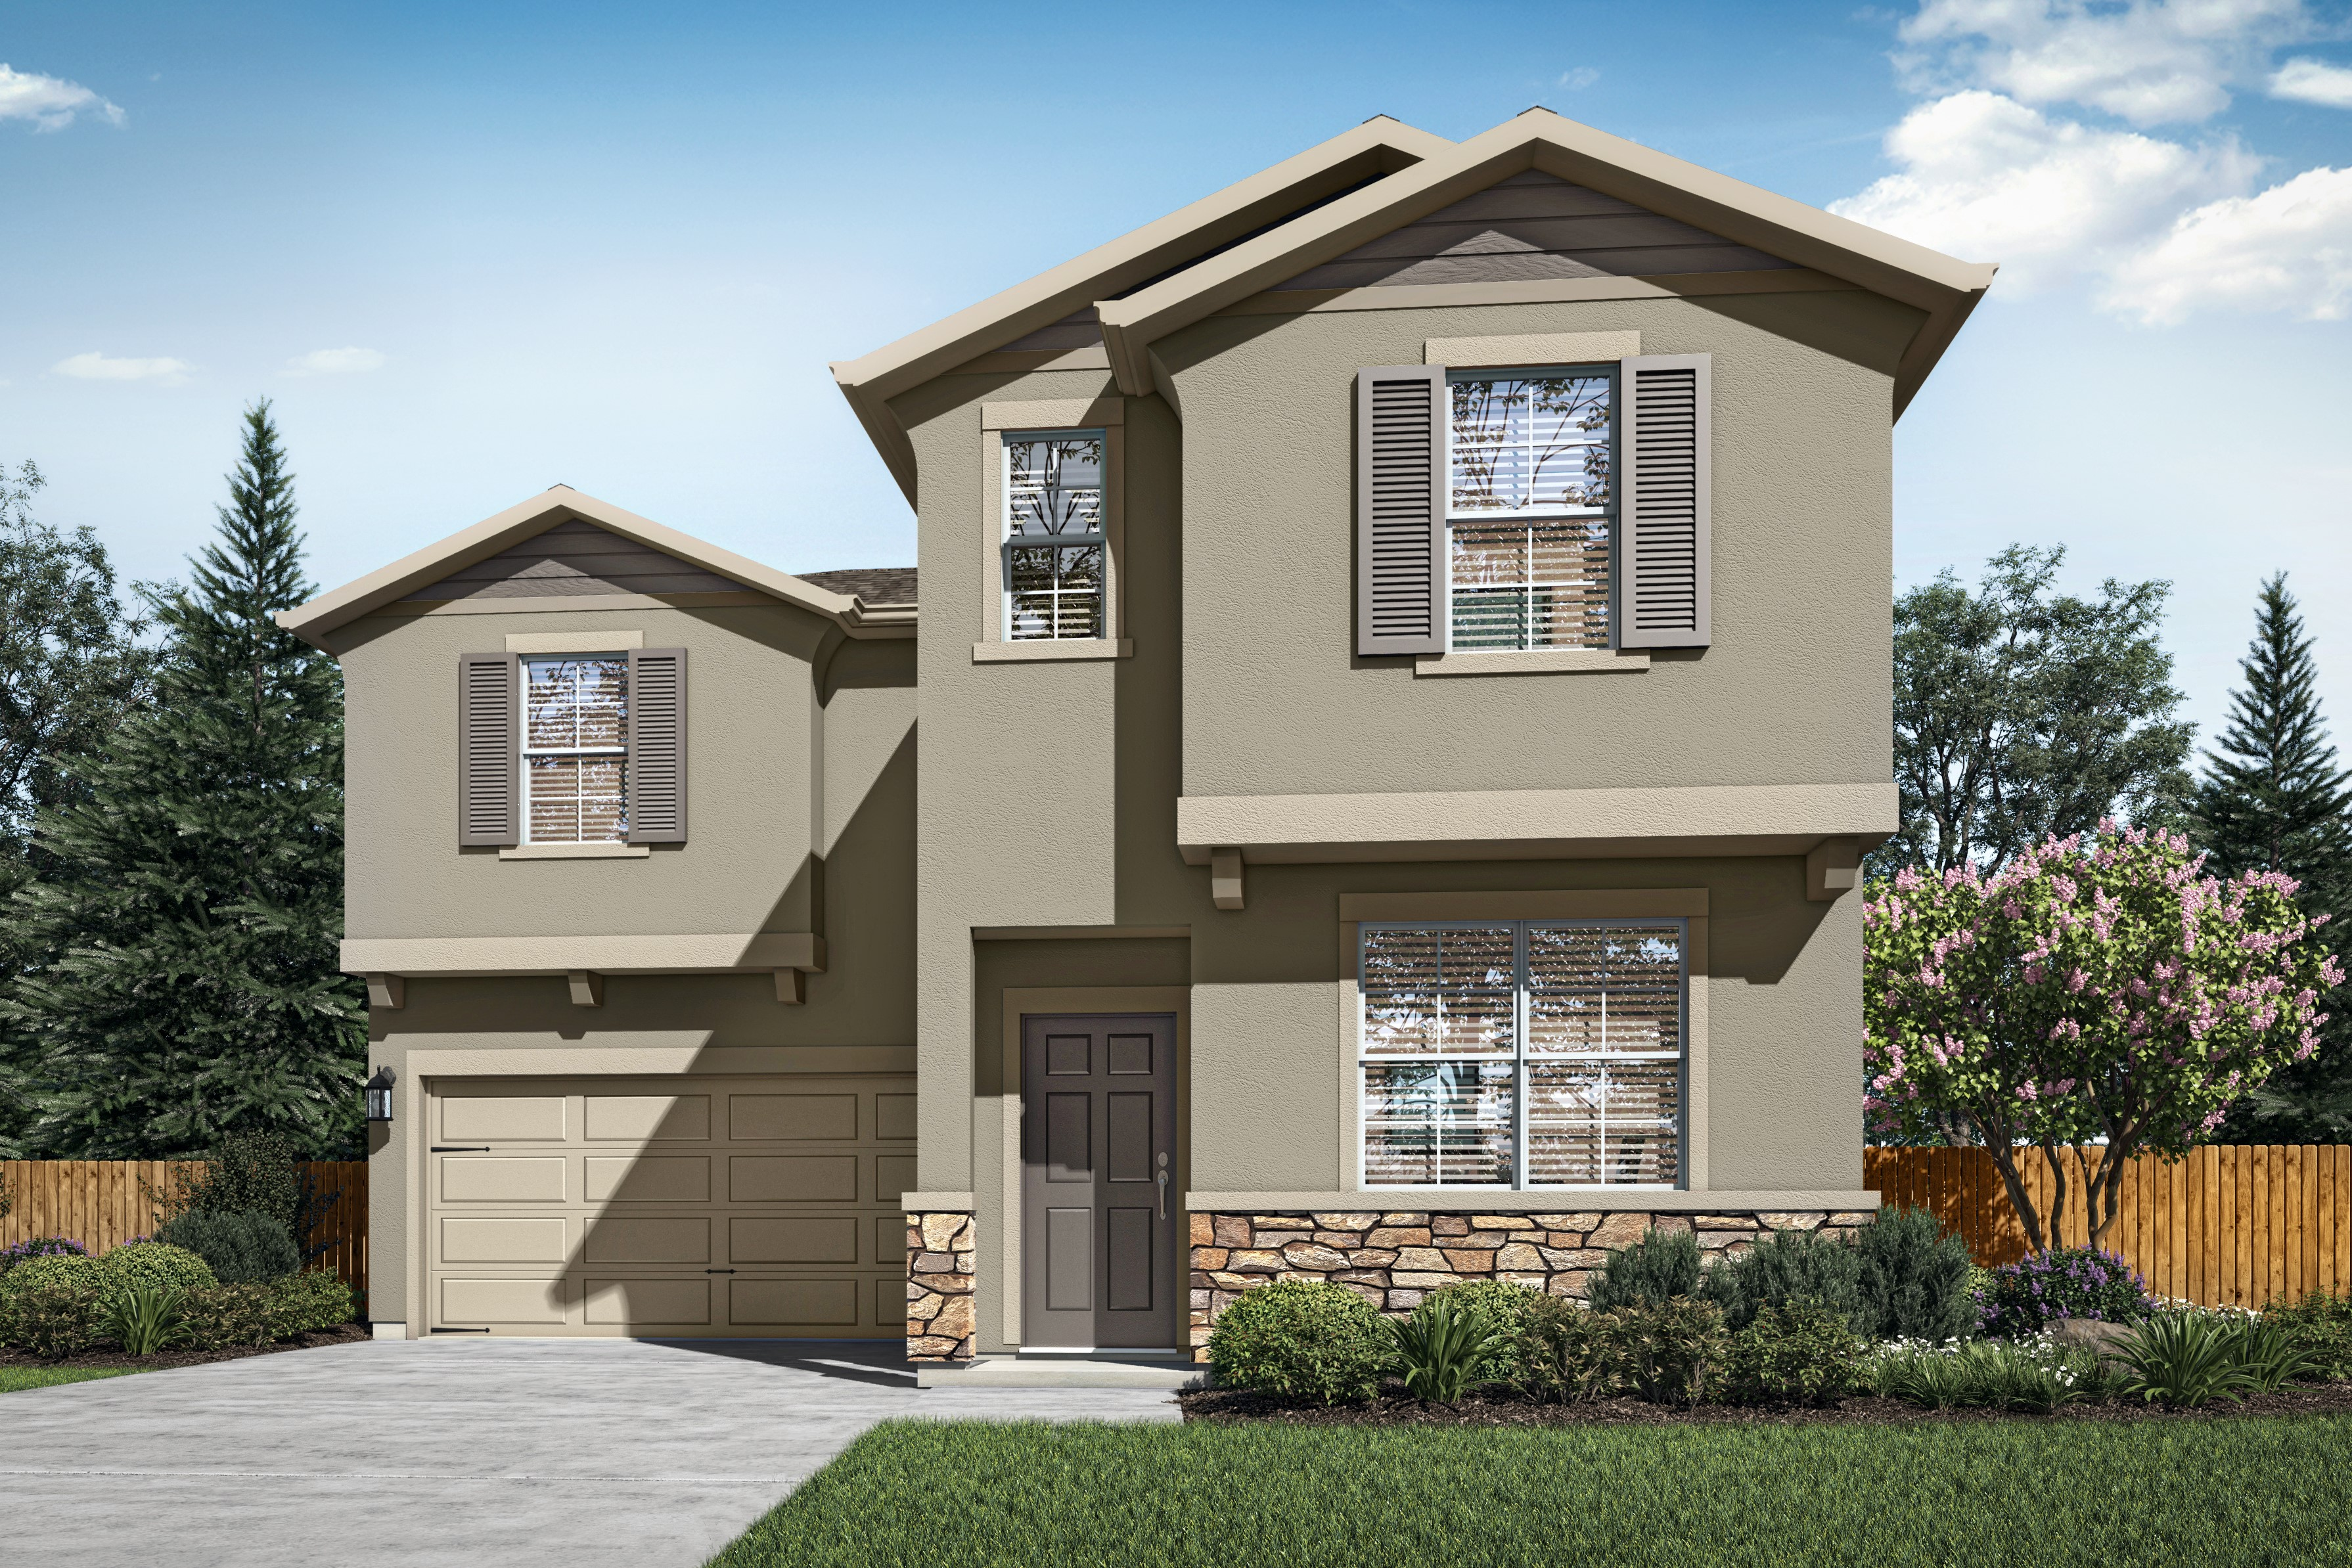 The Magnolia Plan is a brand-new, three-bedroom home featured at The Arbors in Linda, California.